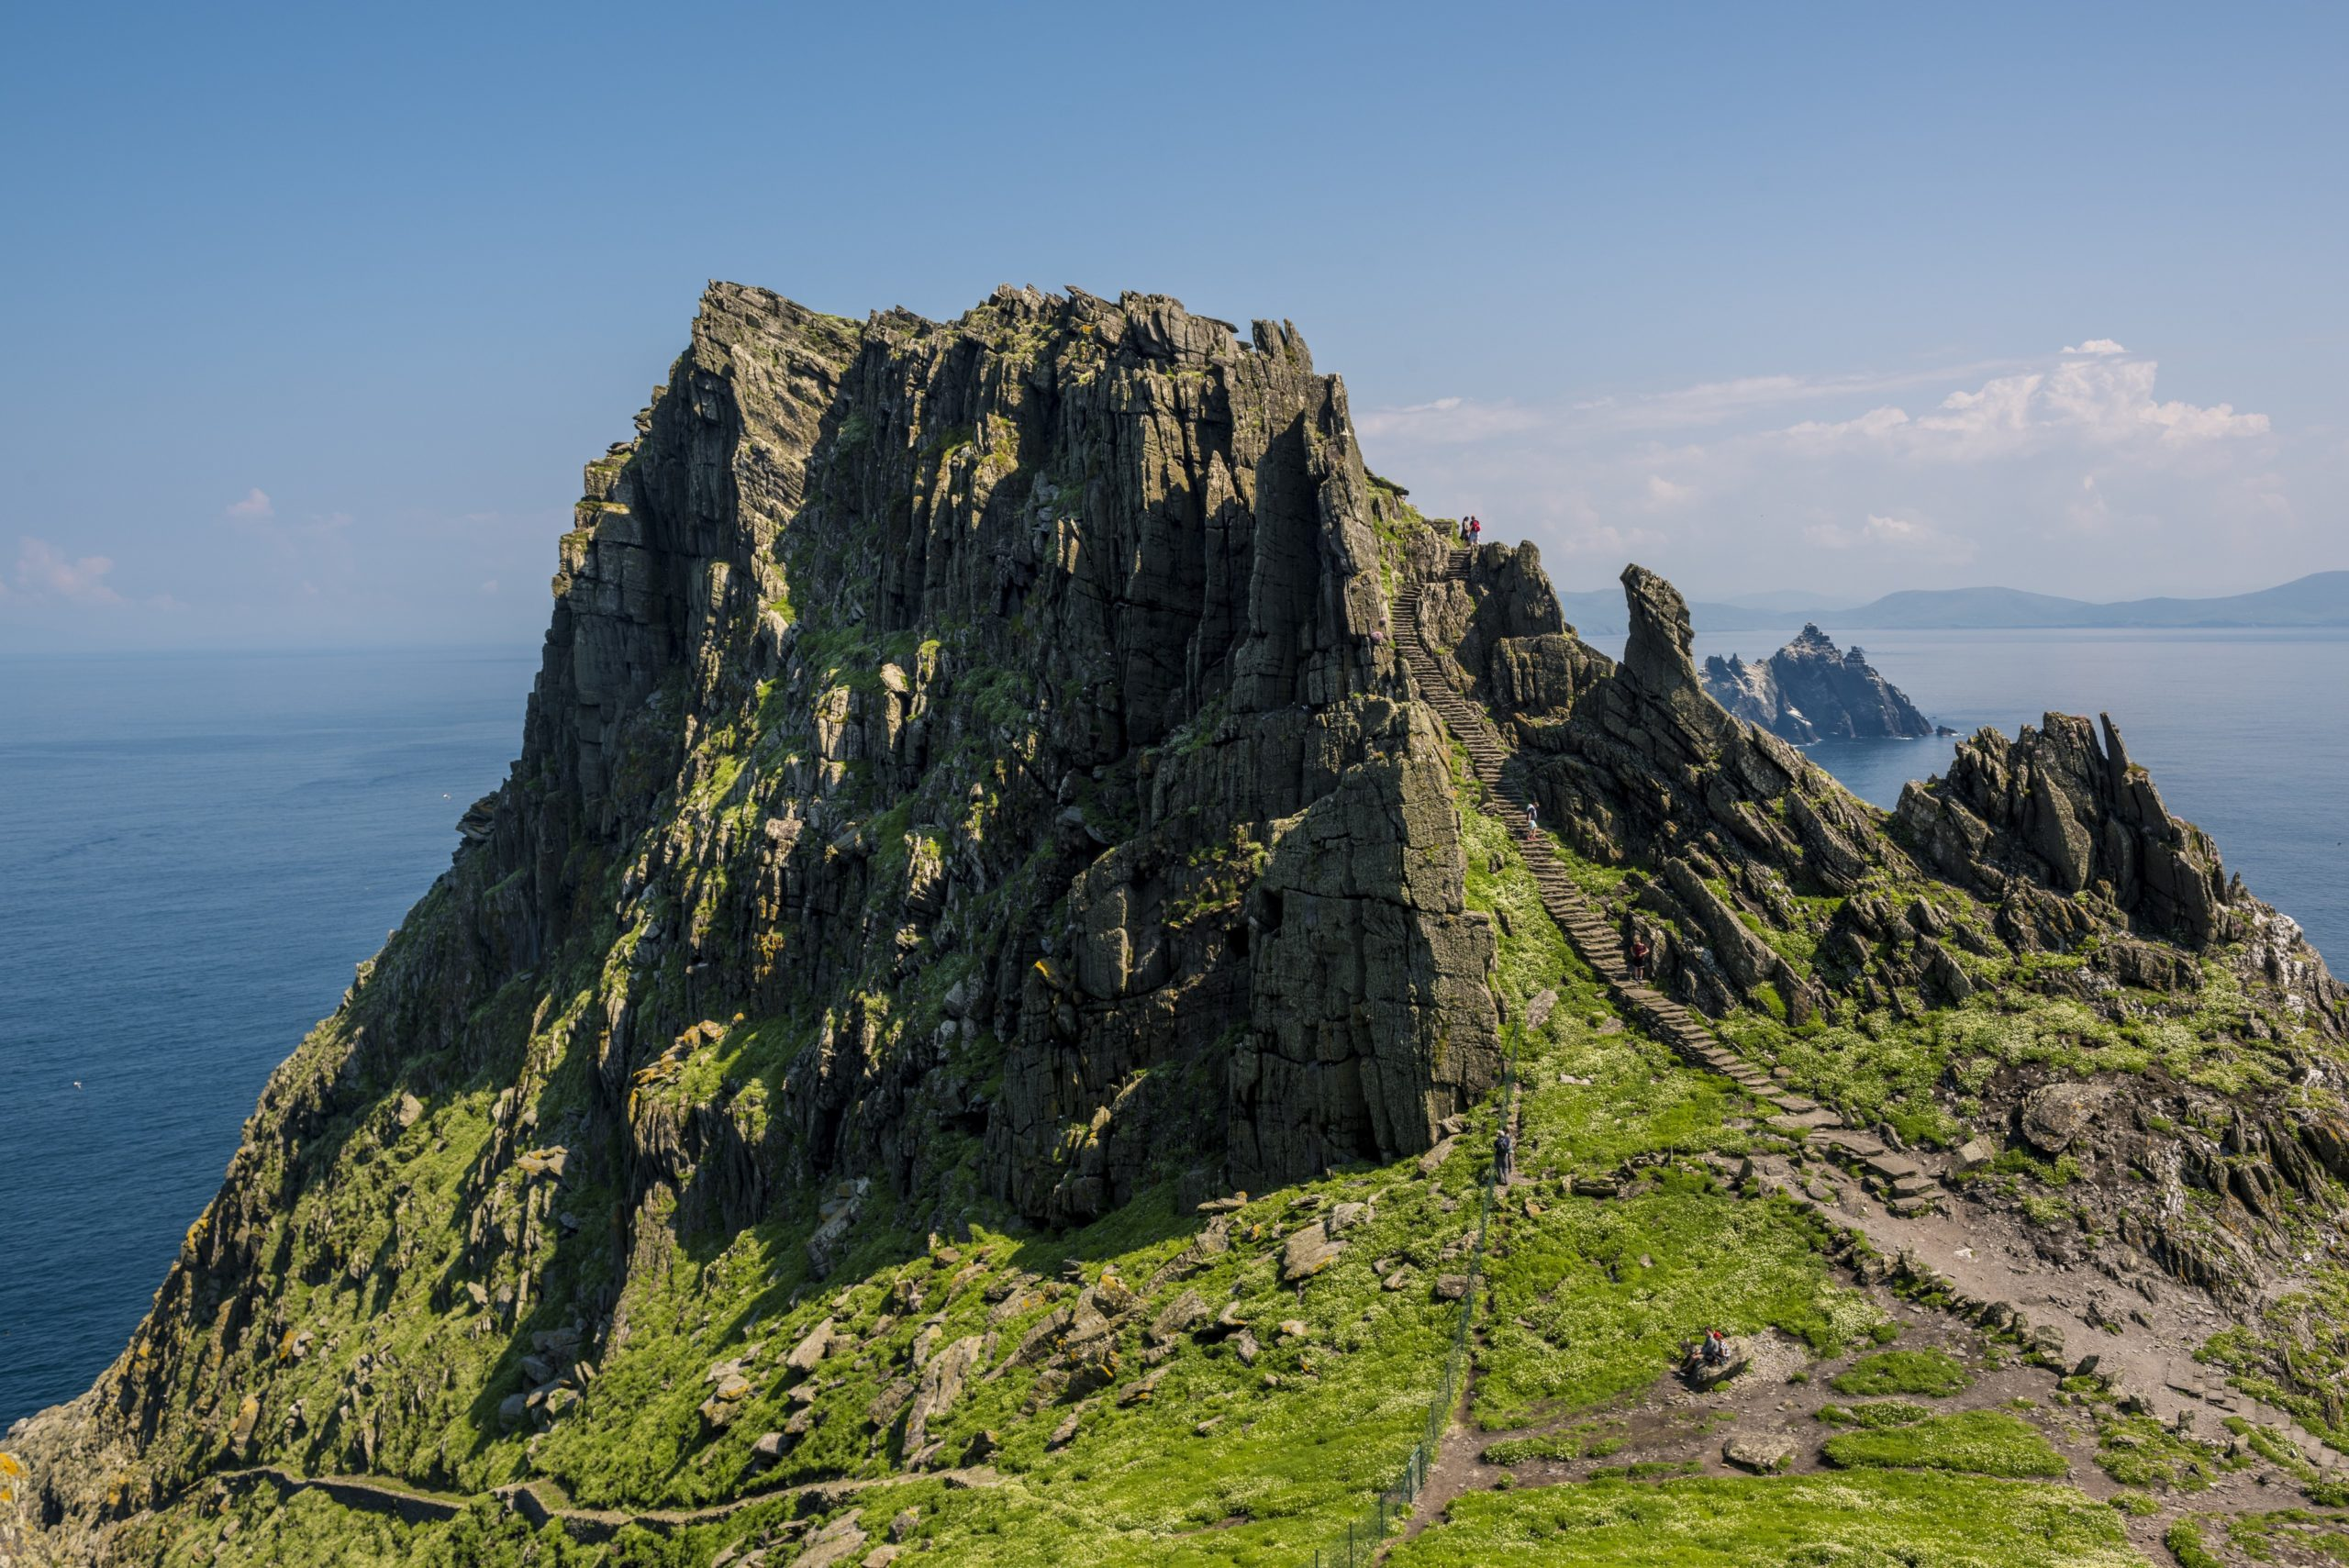 The Steps of Skellig Michael